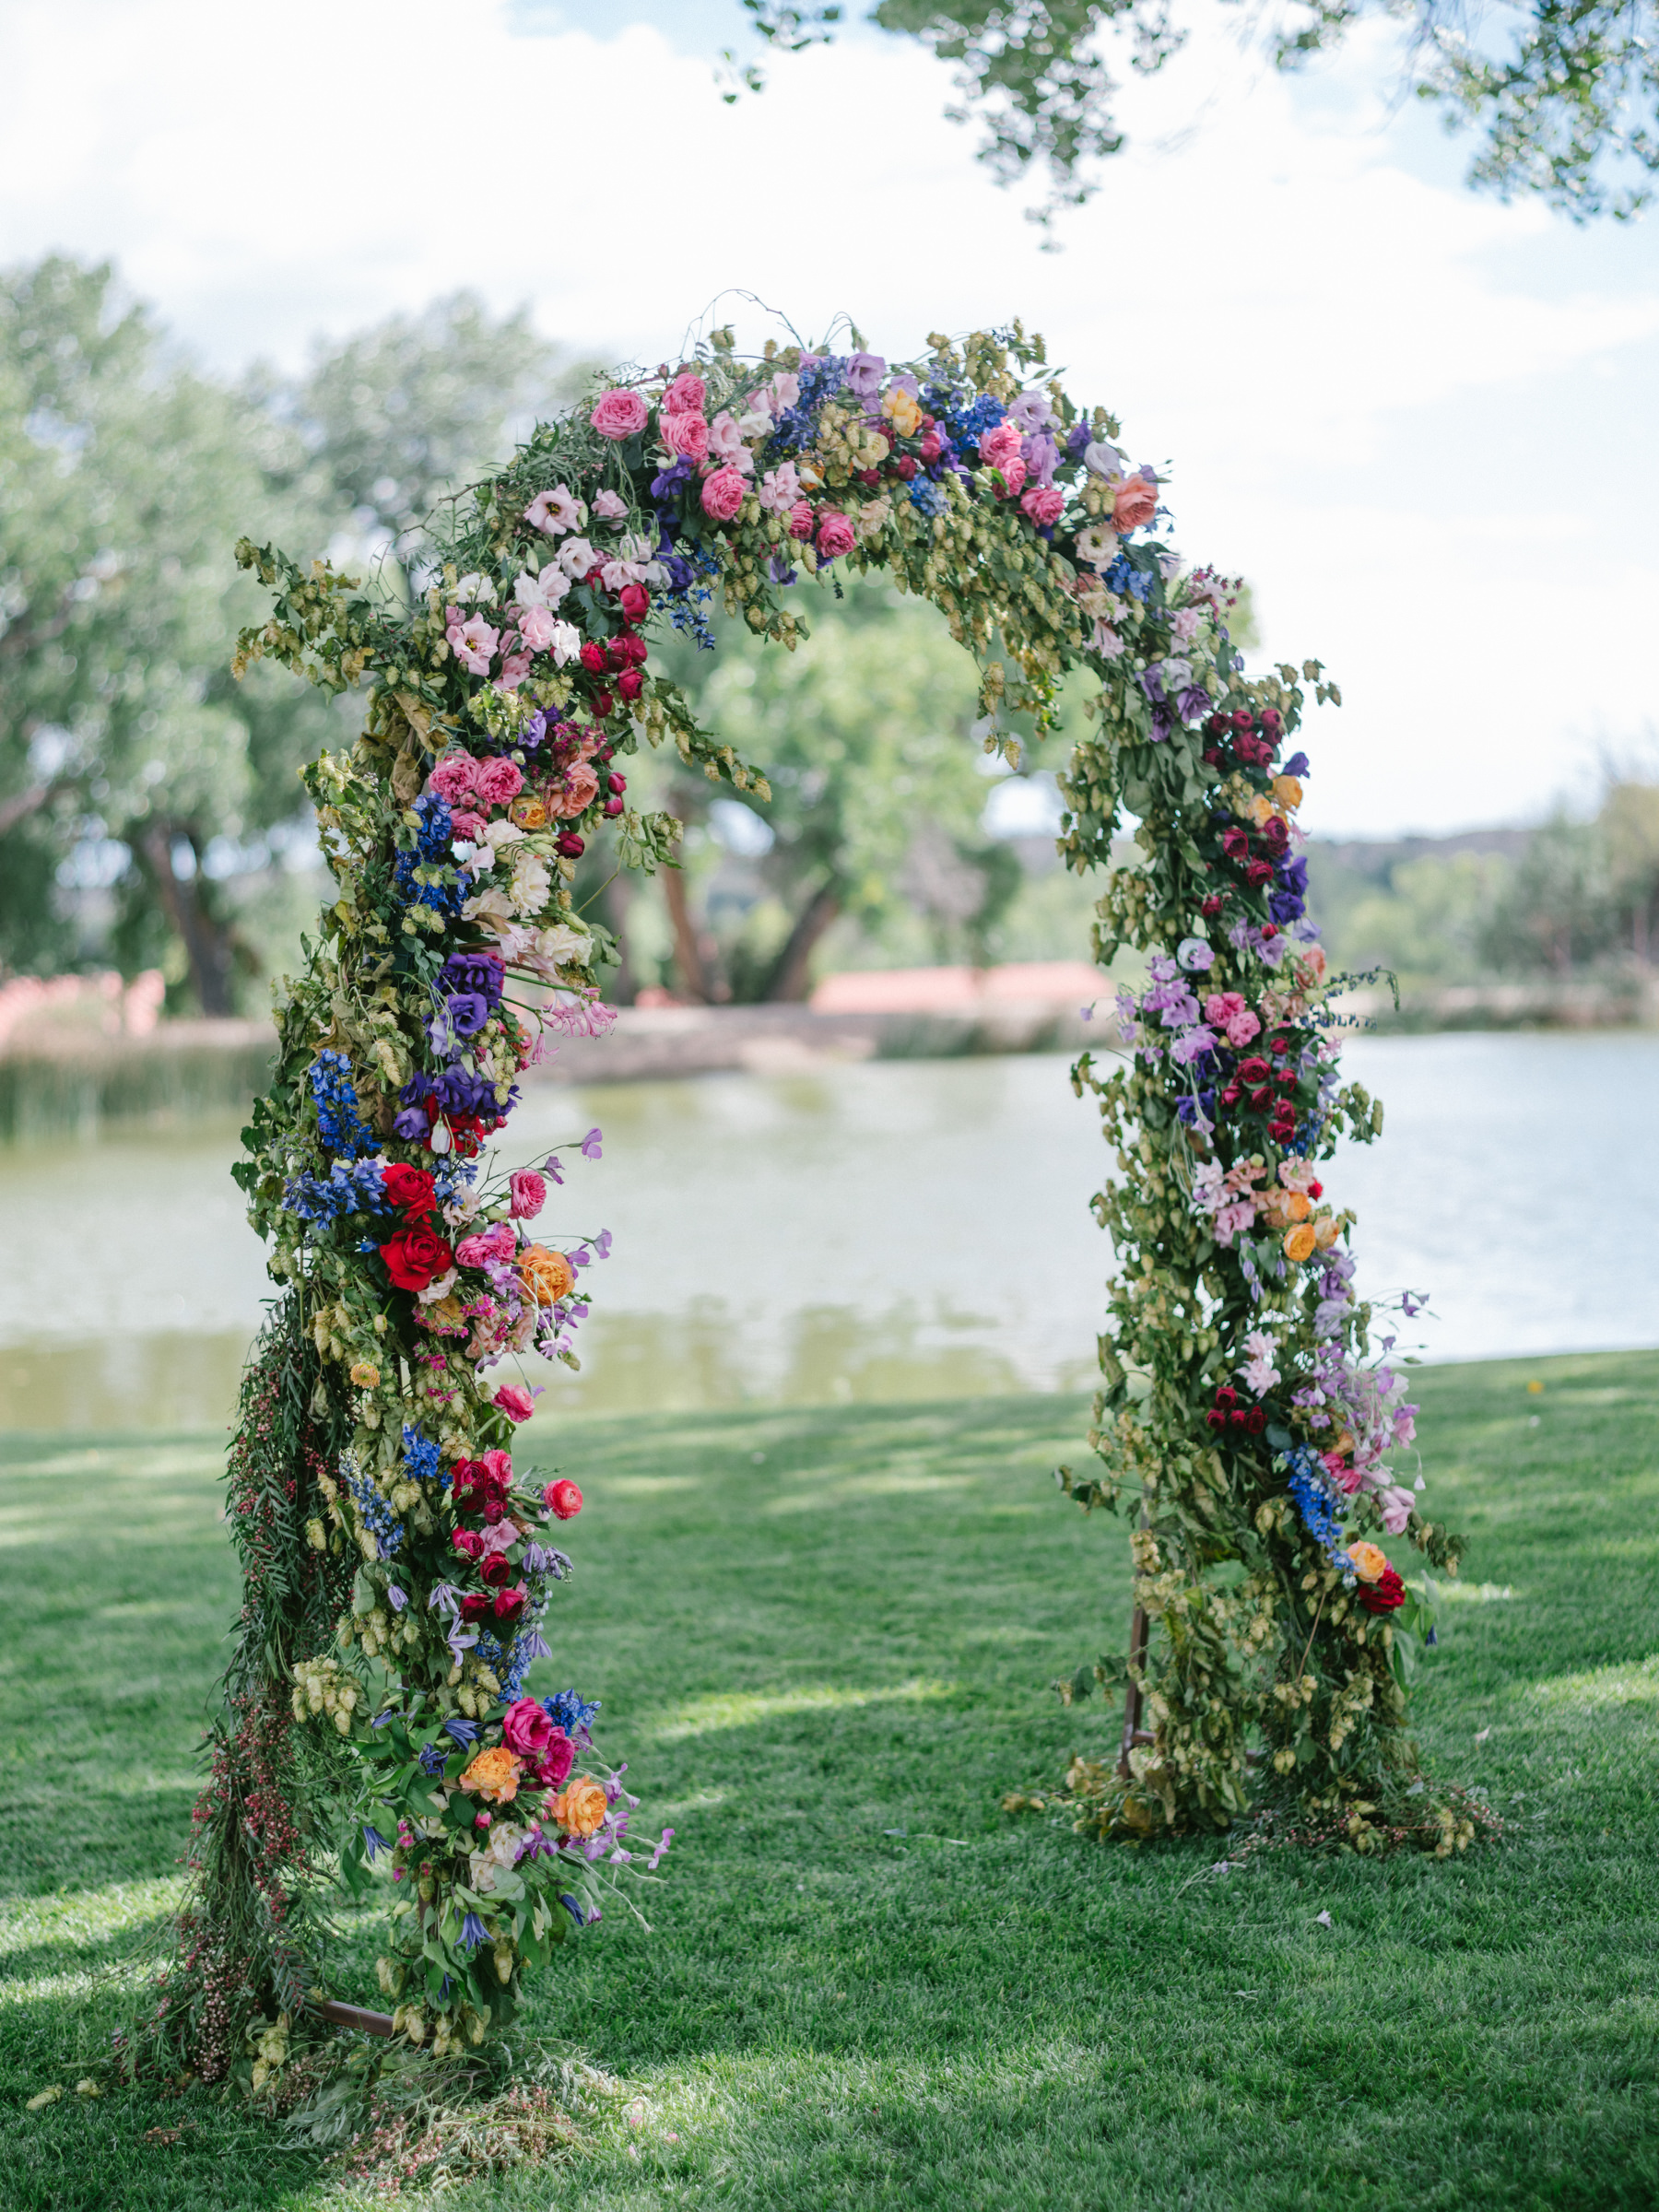 lush-floral-arbor-in-river-setting-amyandstuart-photography